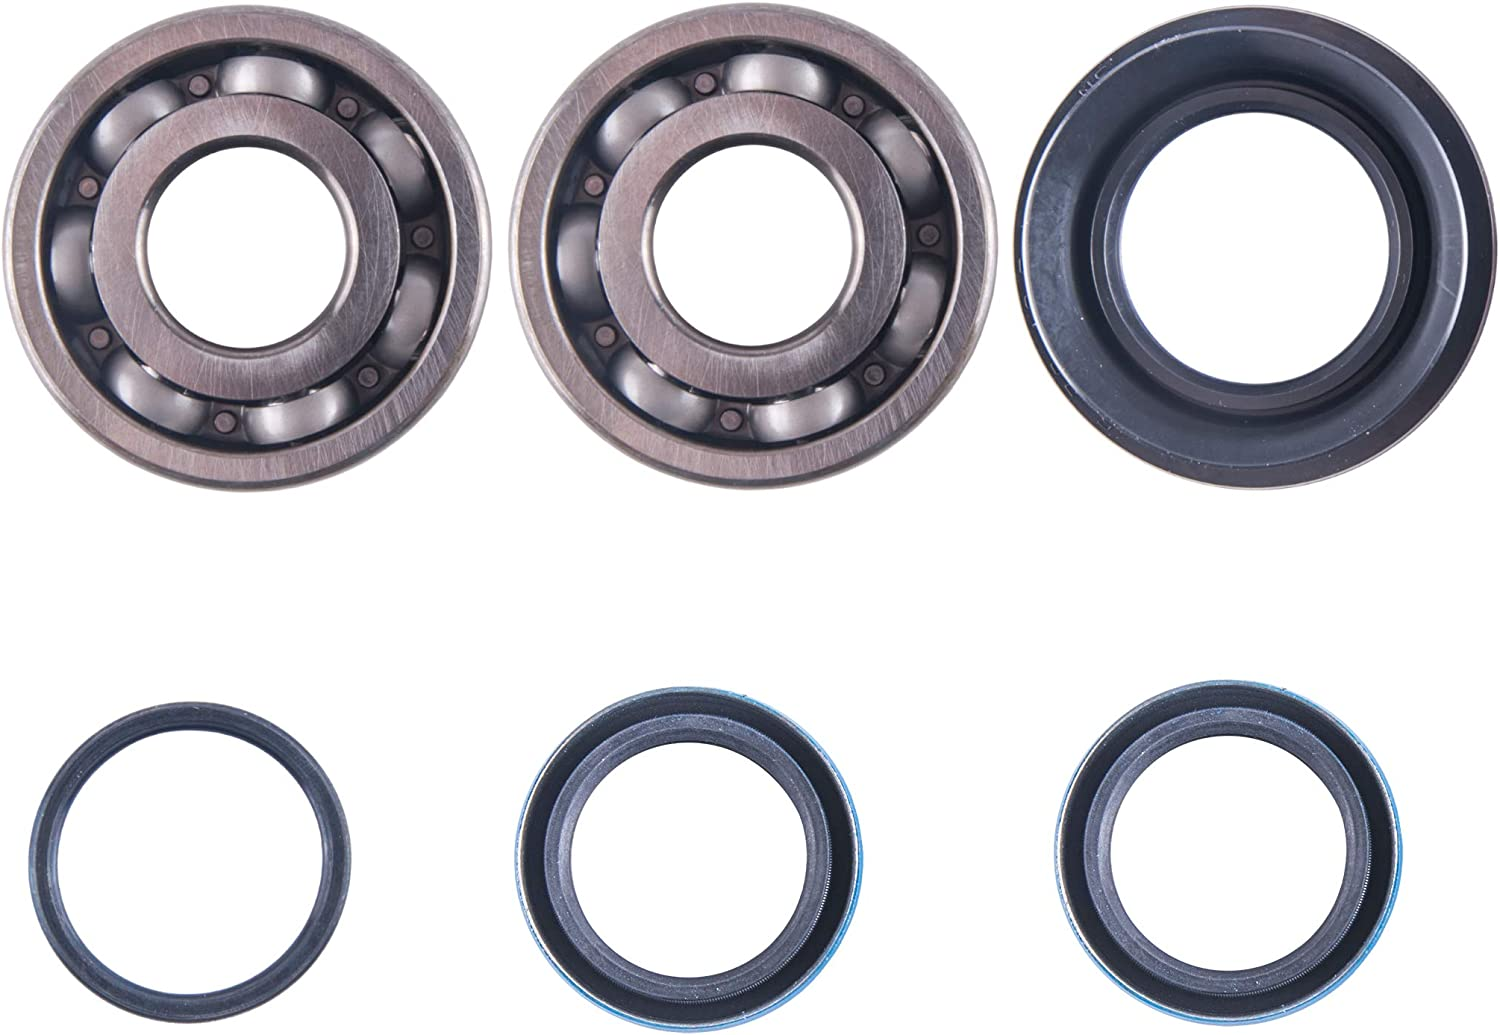 East Lake Axle Low price Discount mail order replacement for Brake Drum Bearings Carrier